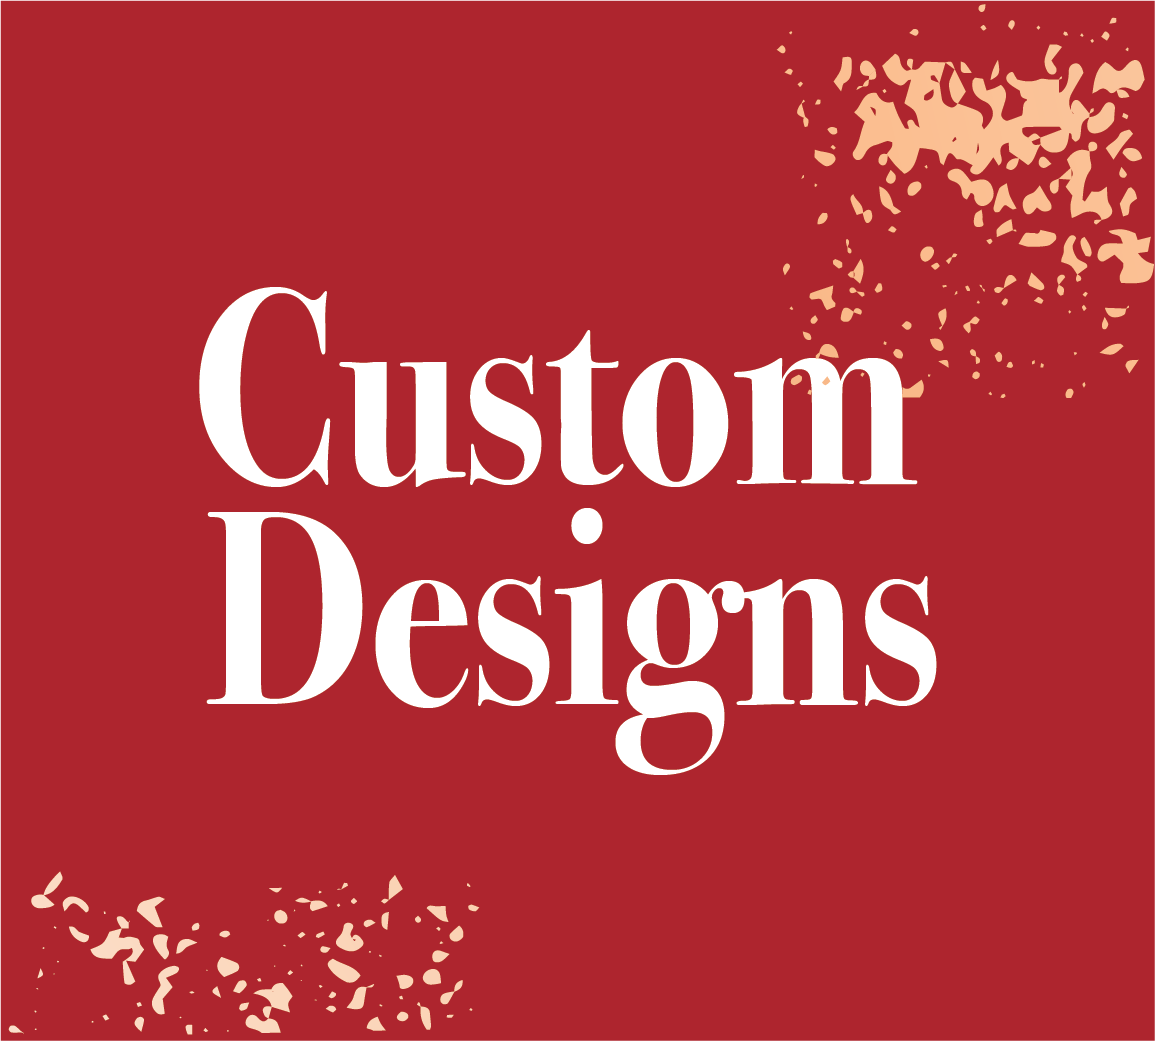 customdesigns.png